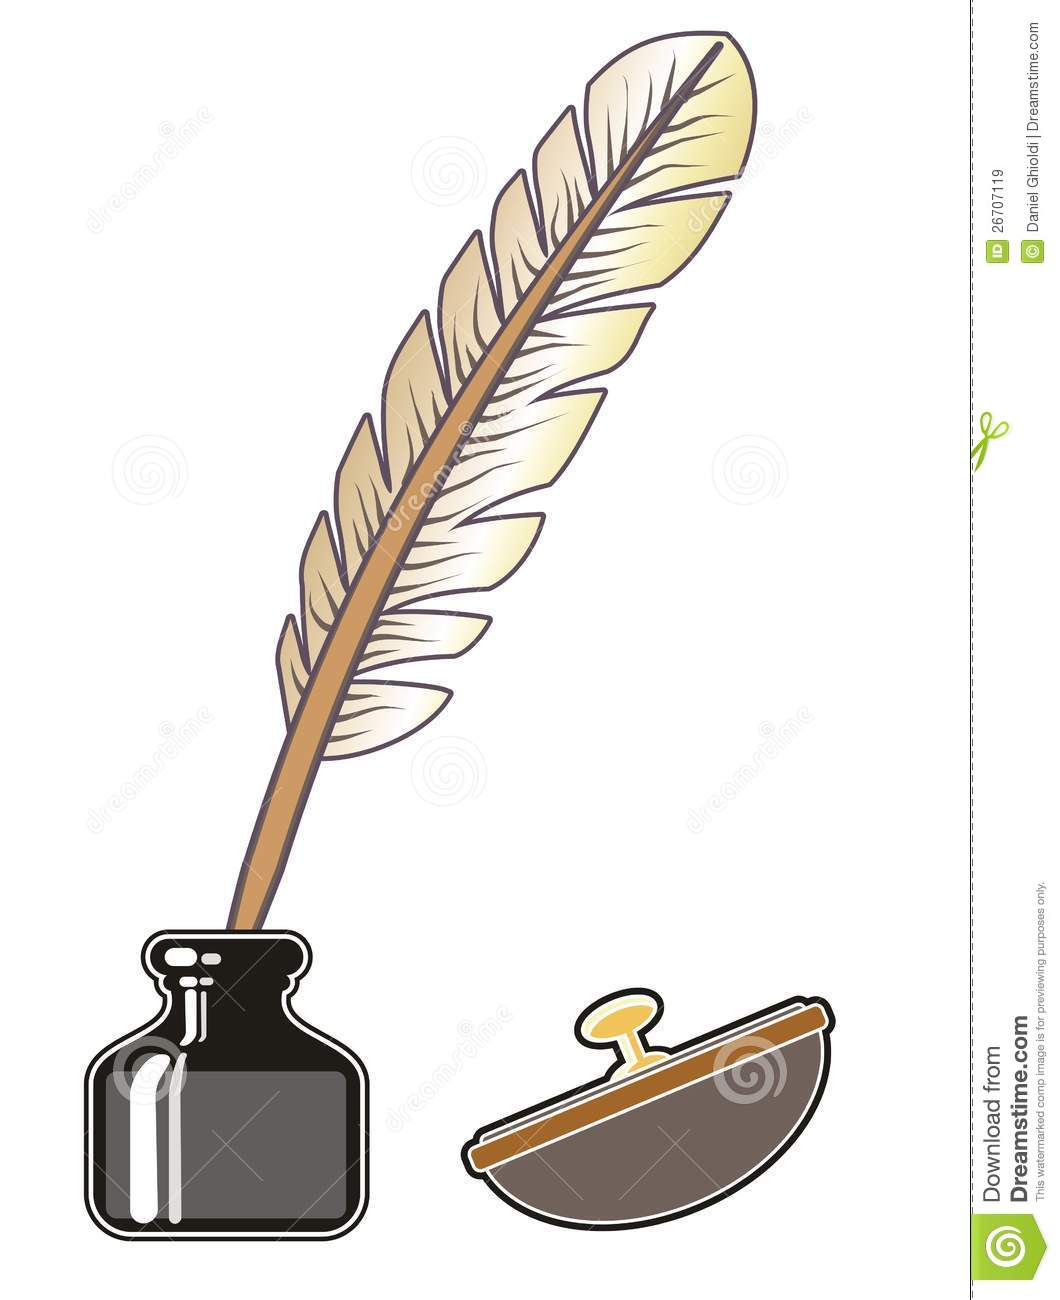 Inkwell and quill stock vector. Illustration of glass ...